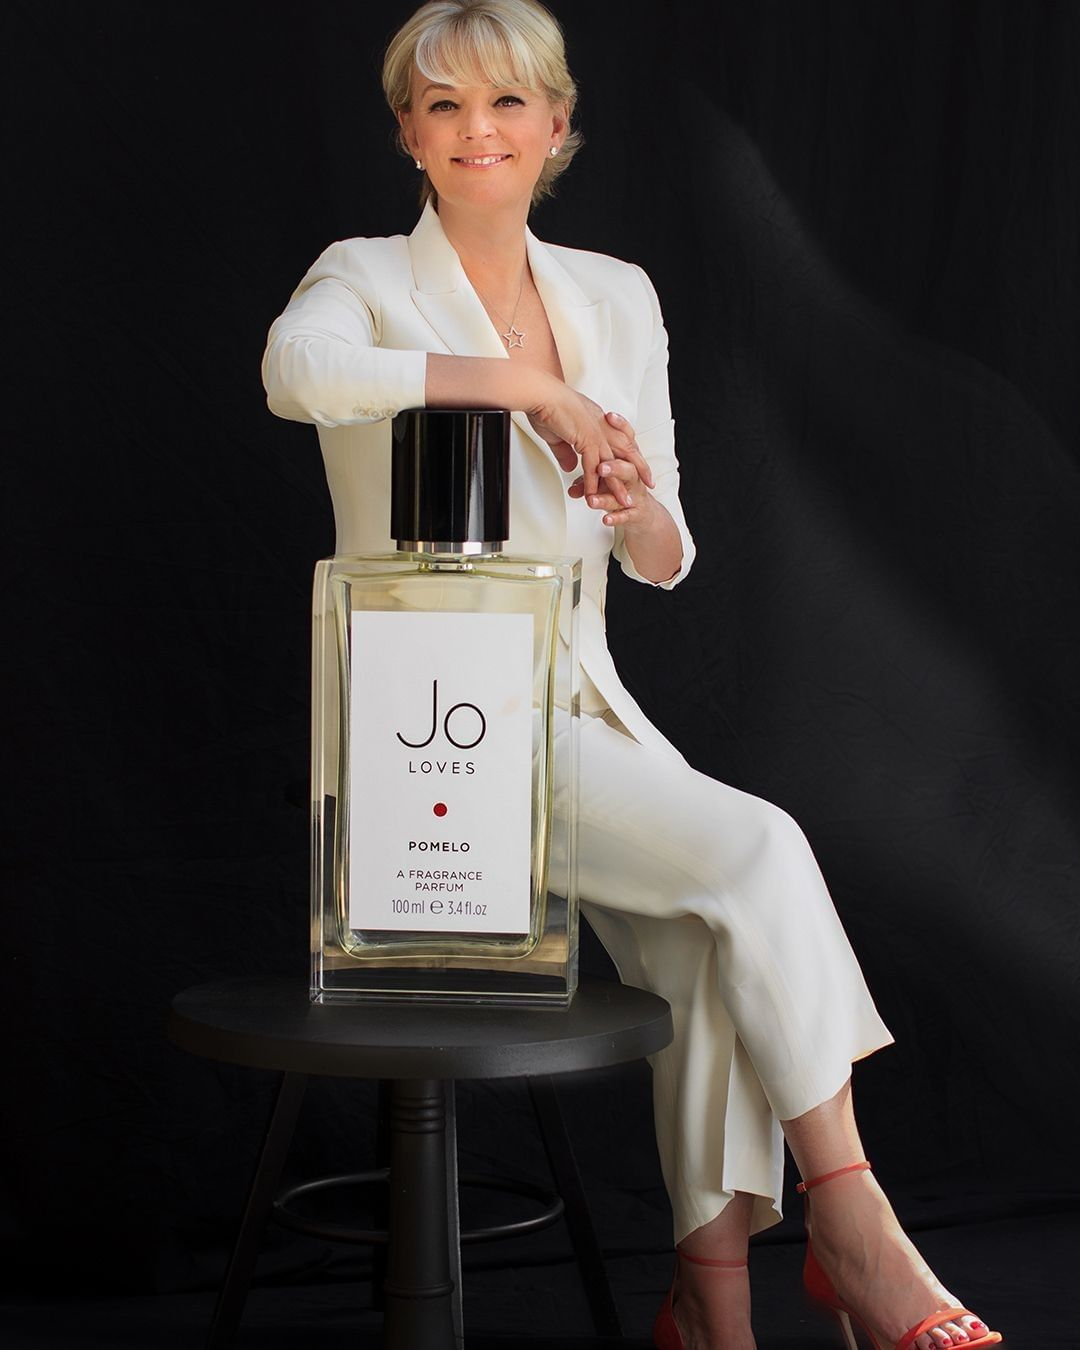 jo malone dubai interview